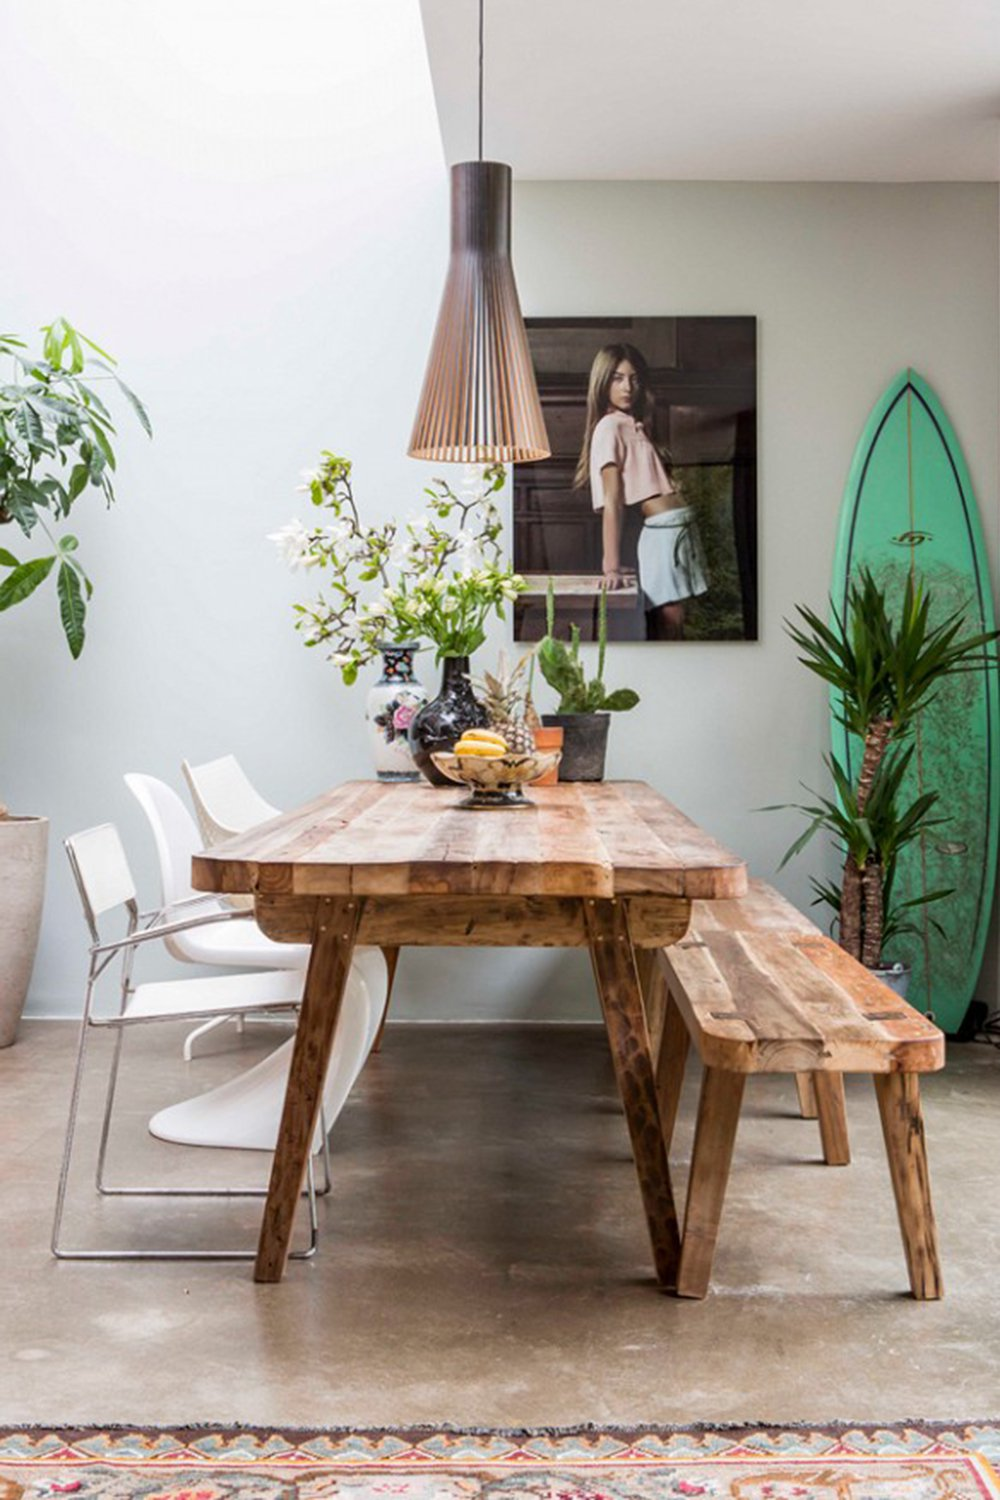 Californian style dining room (source: Pinterest)